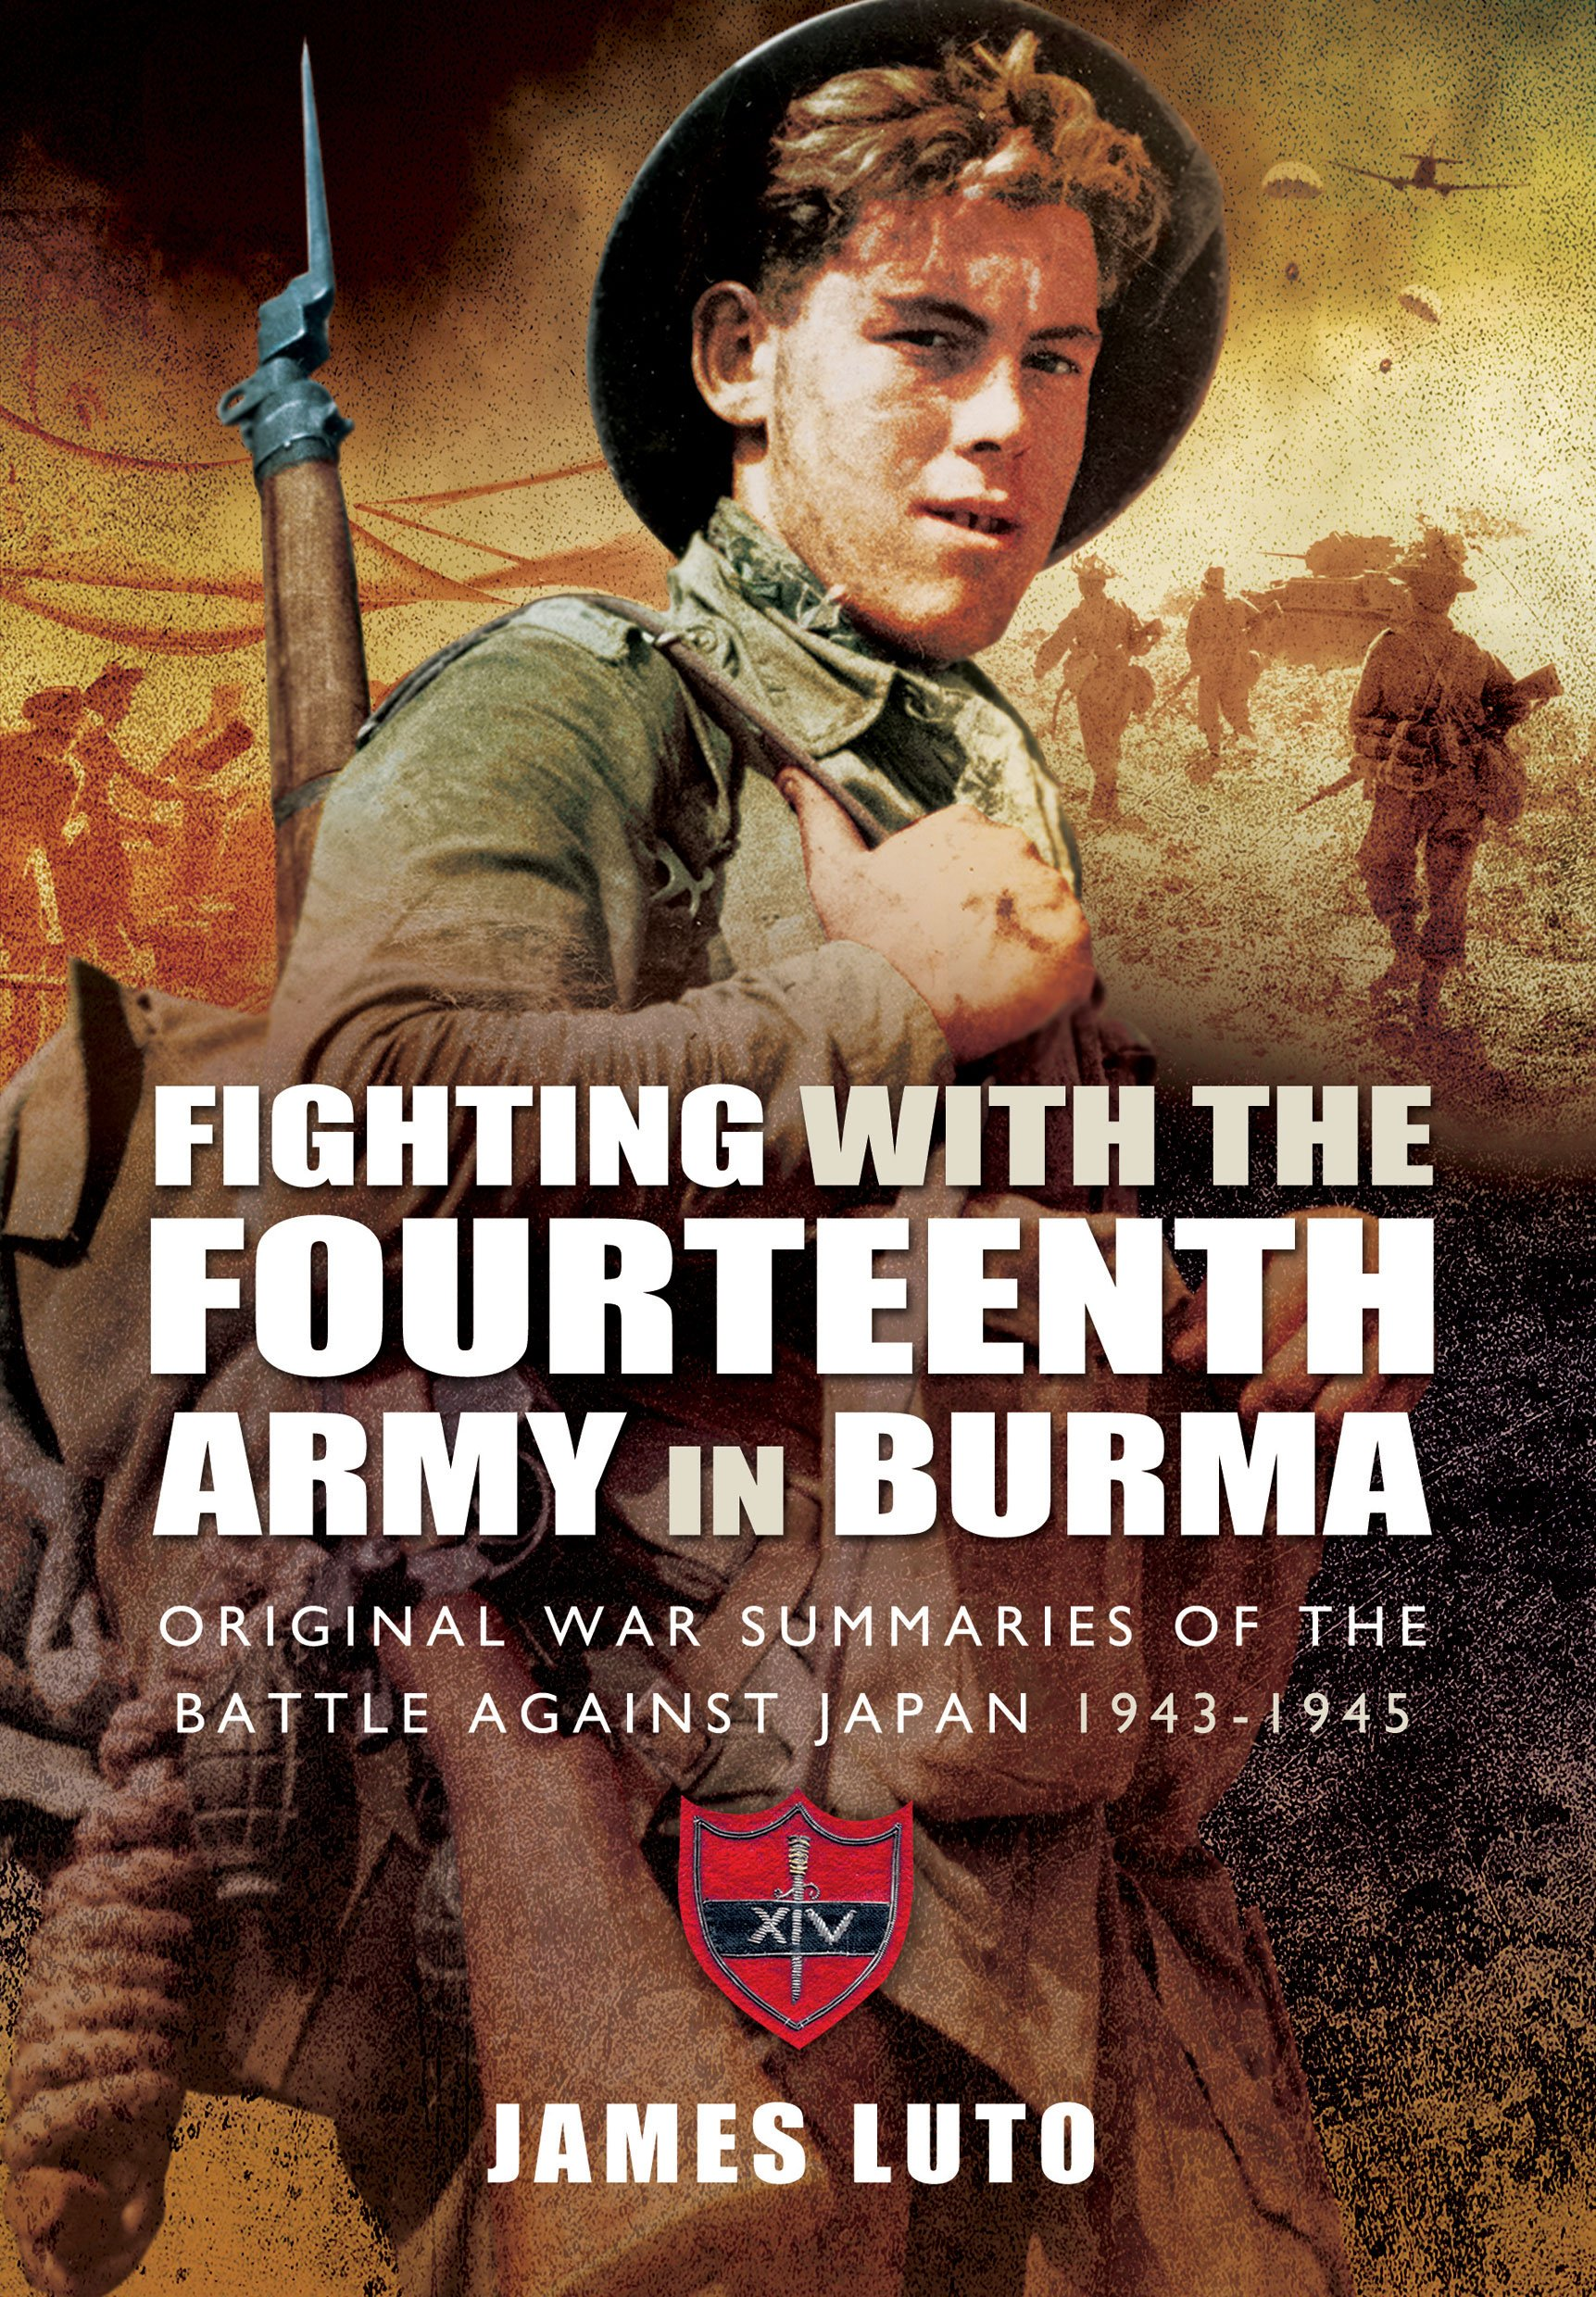 Fighting with the Fourteenth Army in Burma: Original War Summaries of the Battle Against Japan 1943-1945 PDF